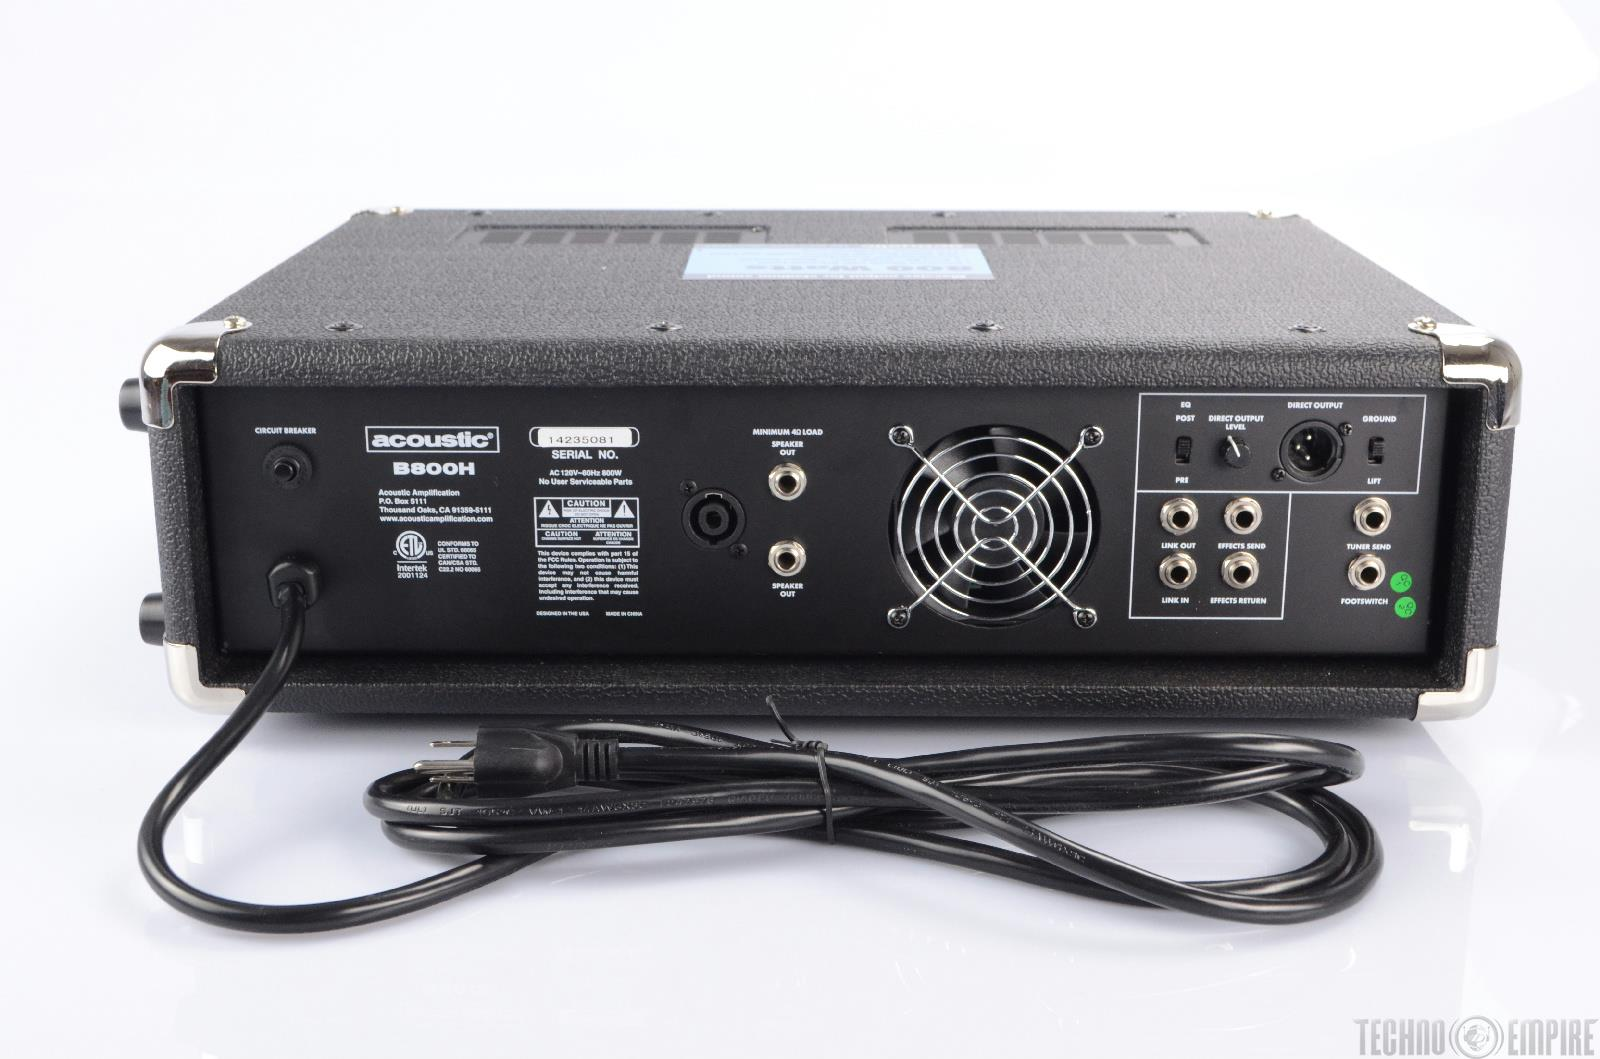 acoustic b800h 800w bass guitar amplifier amp head new 21830 ebay. Black Bedroom Furniture Sets. Home Design Ideas